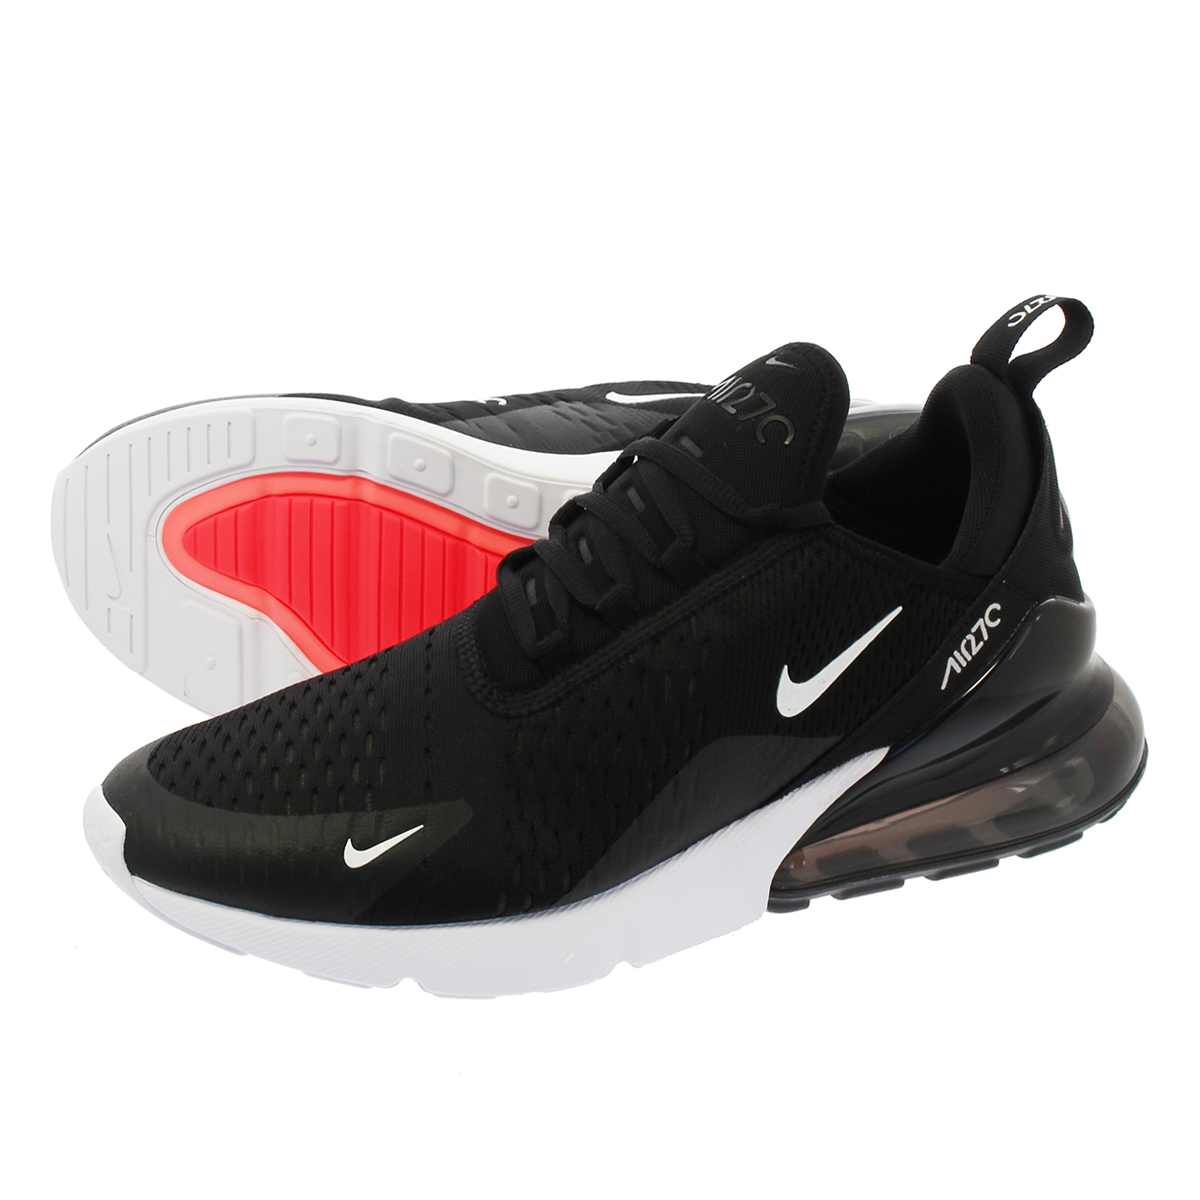 sports shoes 2dff0 0bc6f NIKE AIR MAX 270 Kie Ney AMAX 270 BLACK ANTHRACITE WHITE SOLAR RED ah8050- 002